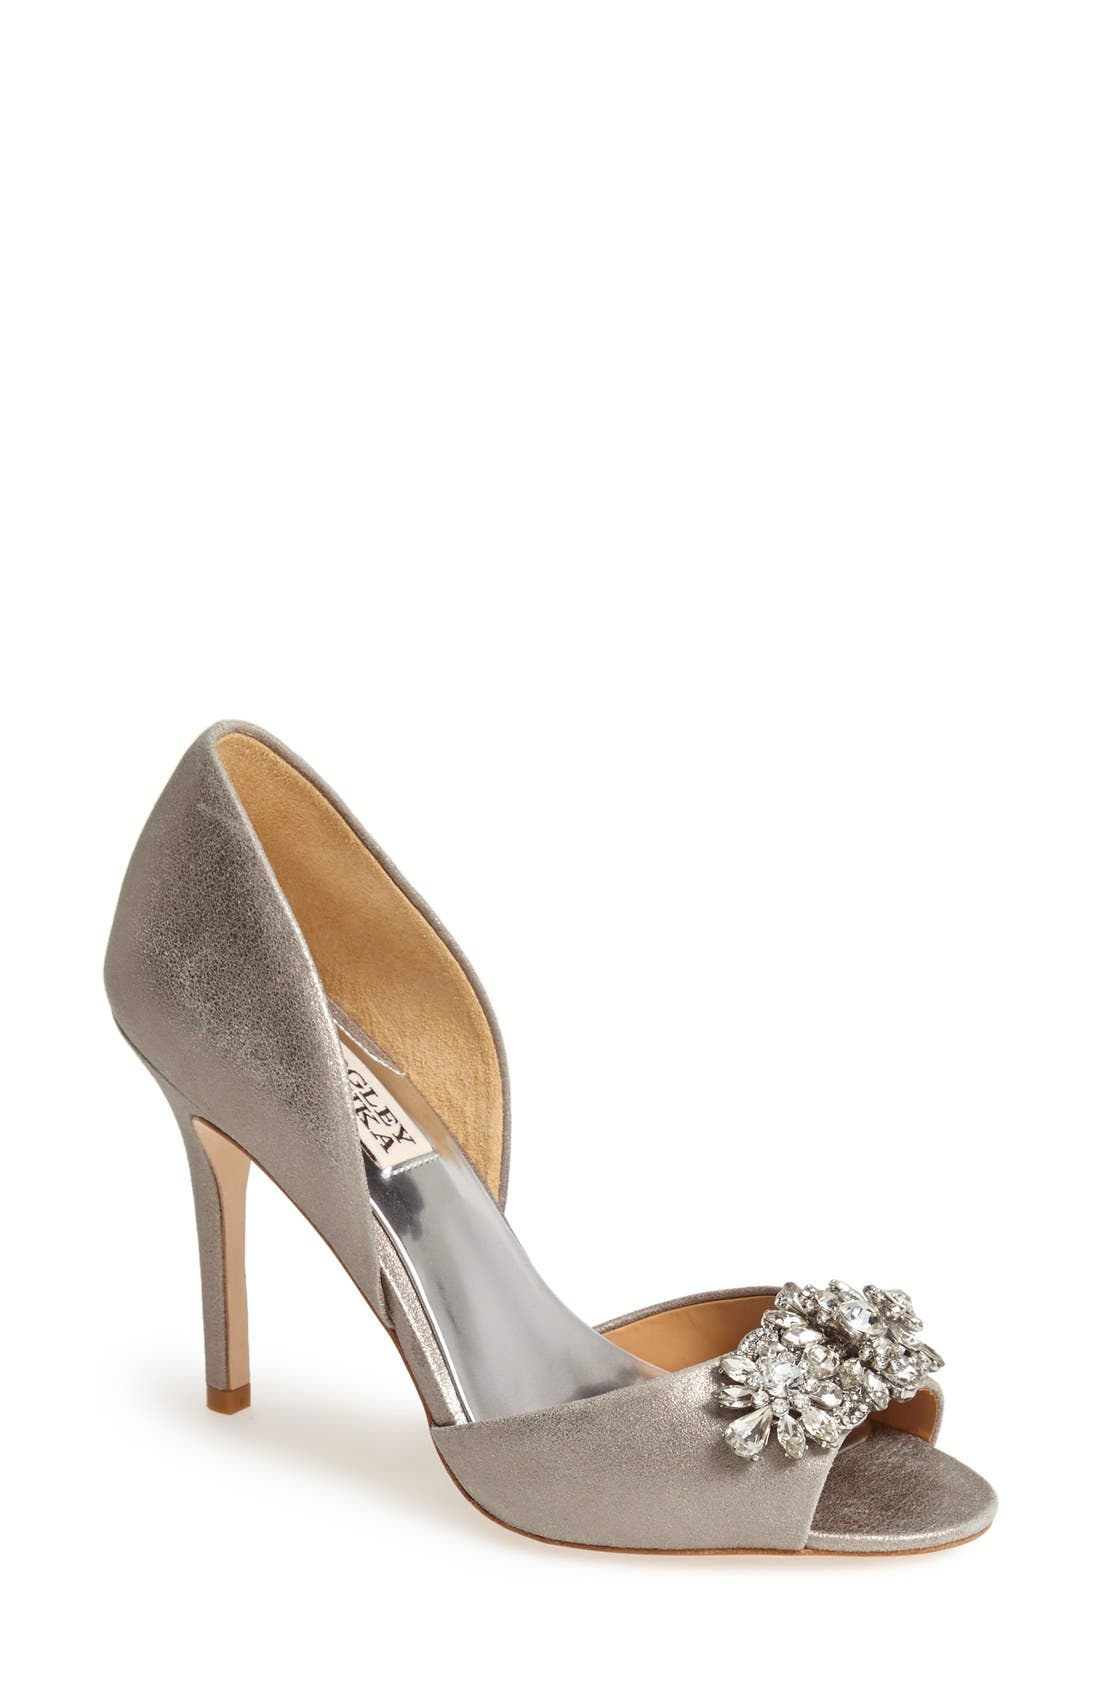 'Giana' Satin d'Orsay Pump,                             Main thumbnail 1, color,                             Pewter